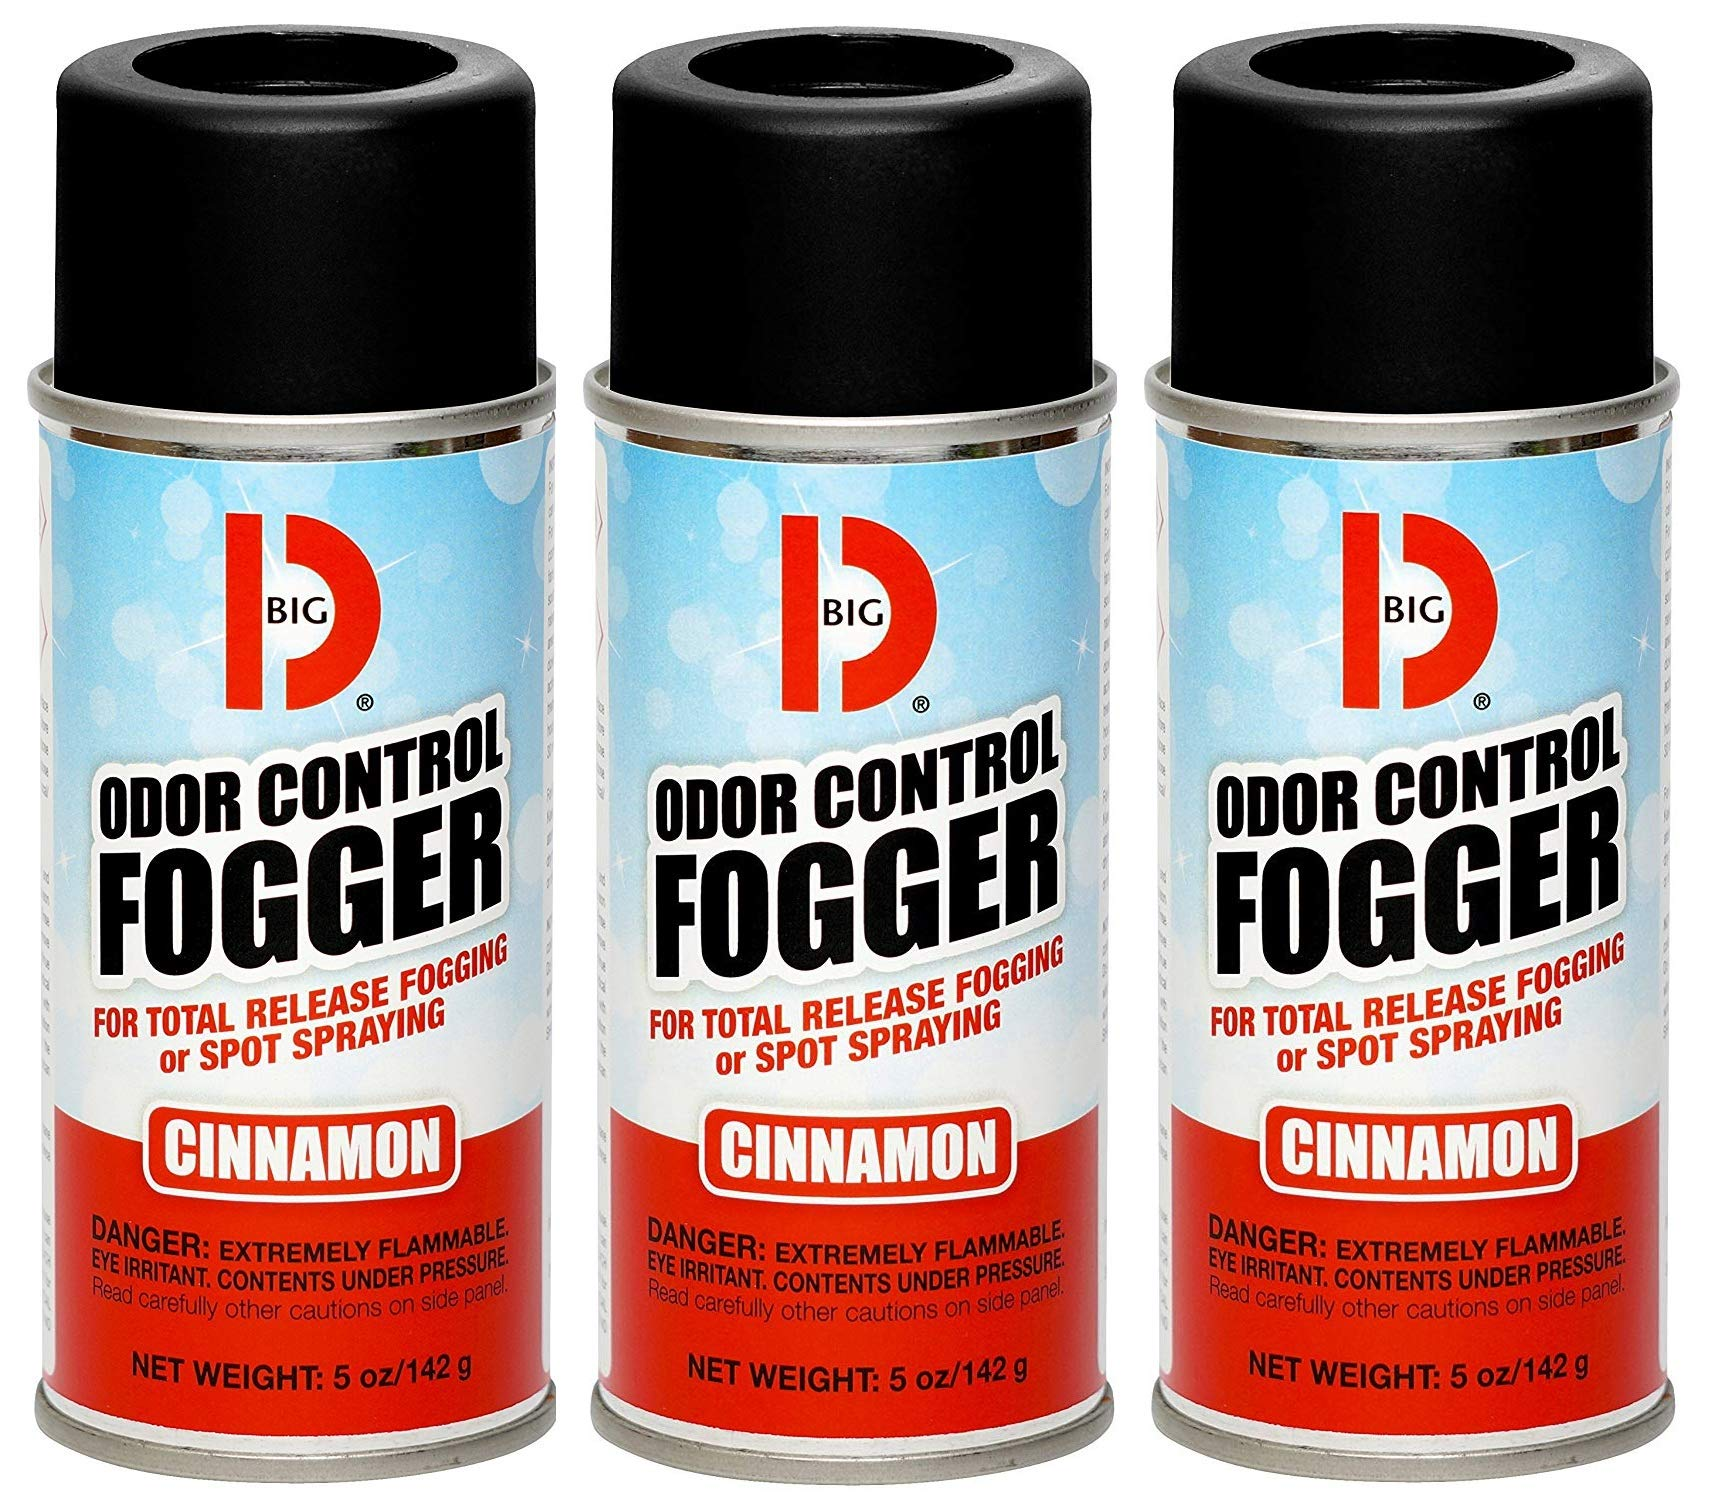 Big D 342 Odor Control Fogger, Cinnamon Fragrance, 5 oz (Pack of 12) - Kills Odors from fire, Flood, Decomposition, Skunk, Cigarettes, Musty Smells - Ideal for use in Cars (Вundlе оf Fіvе)